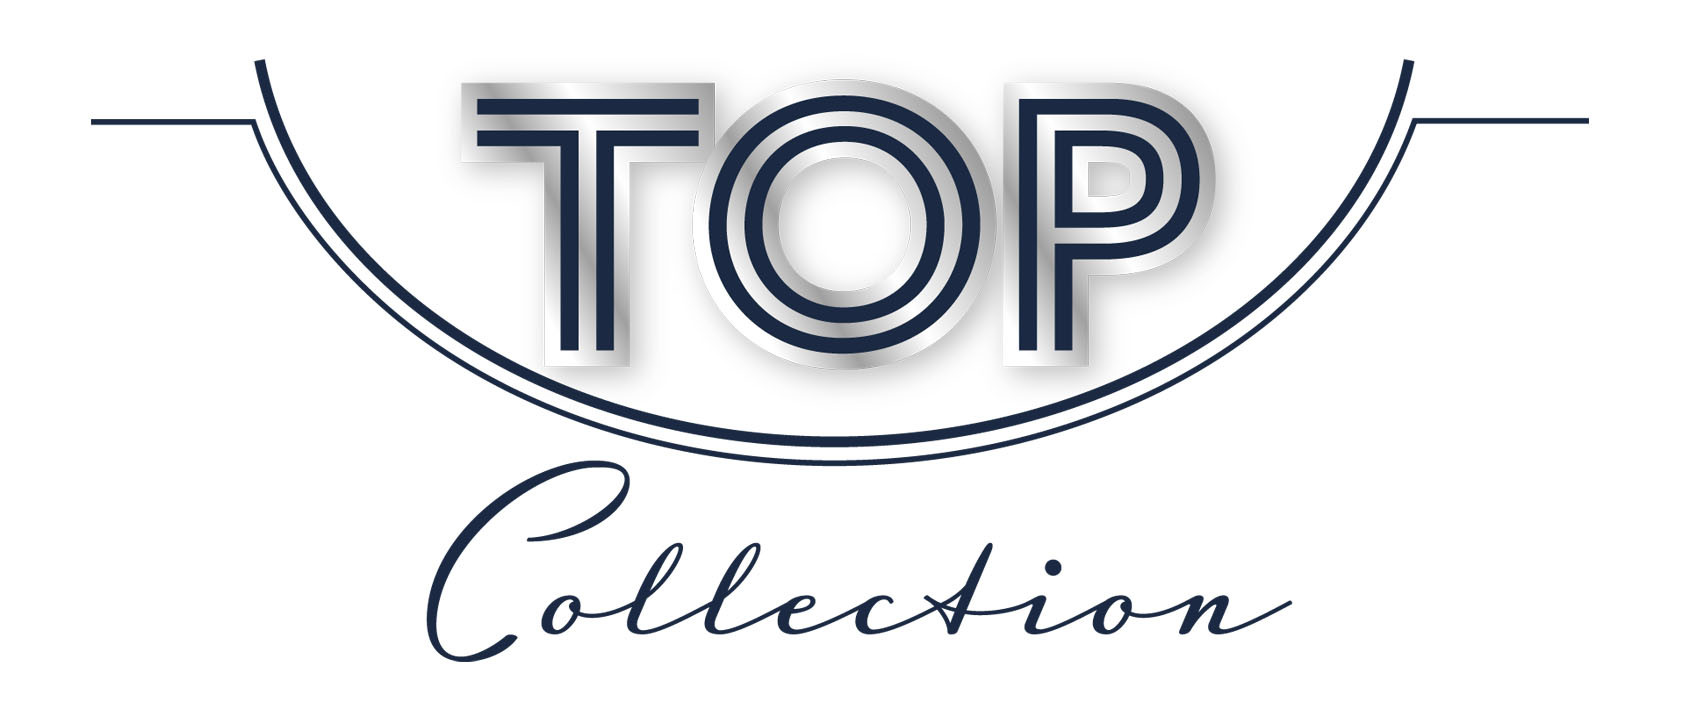 Top Collection